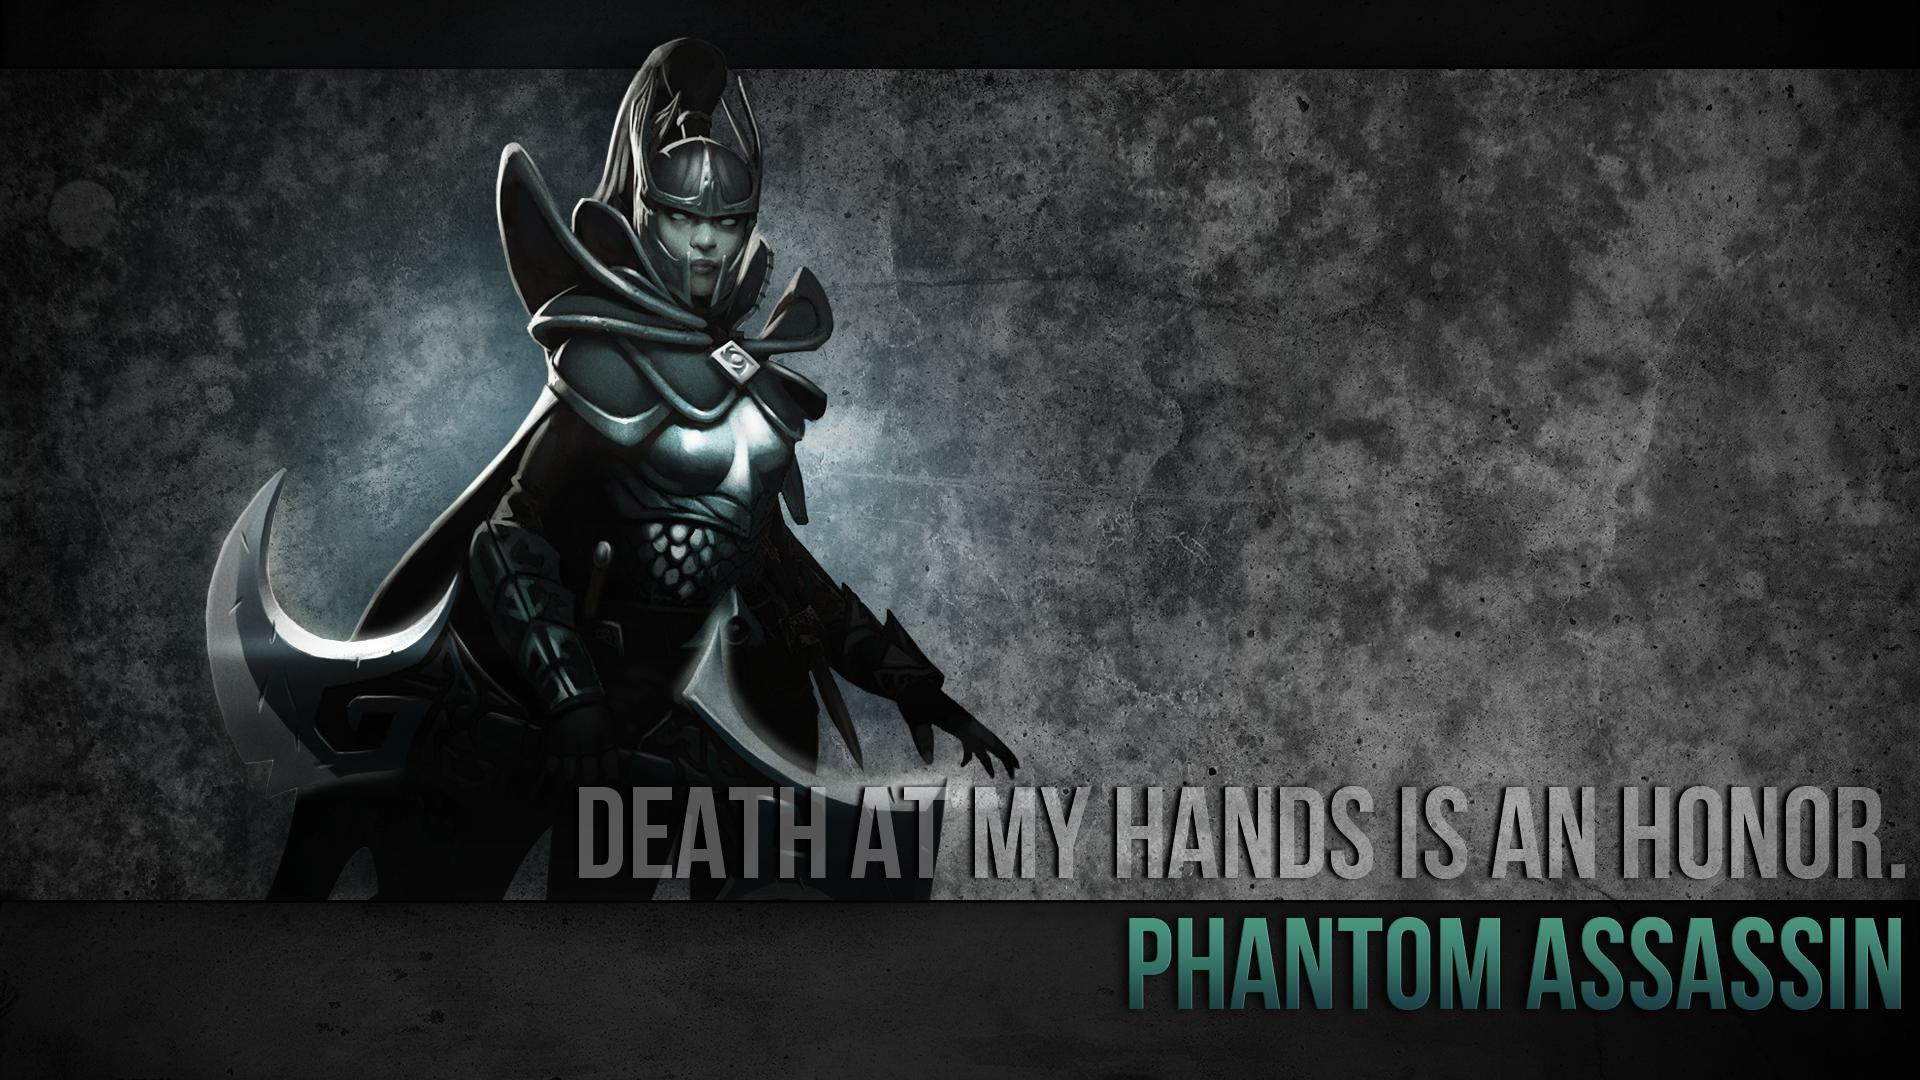 Download Wallpaper From Game Dota 2 Phantom Assassin With Tags